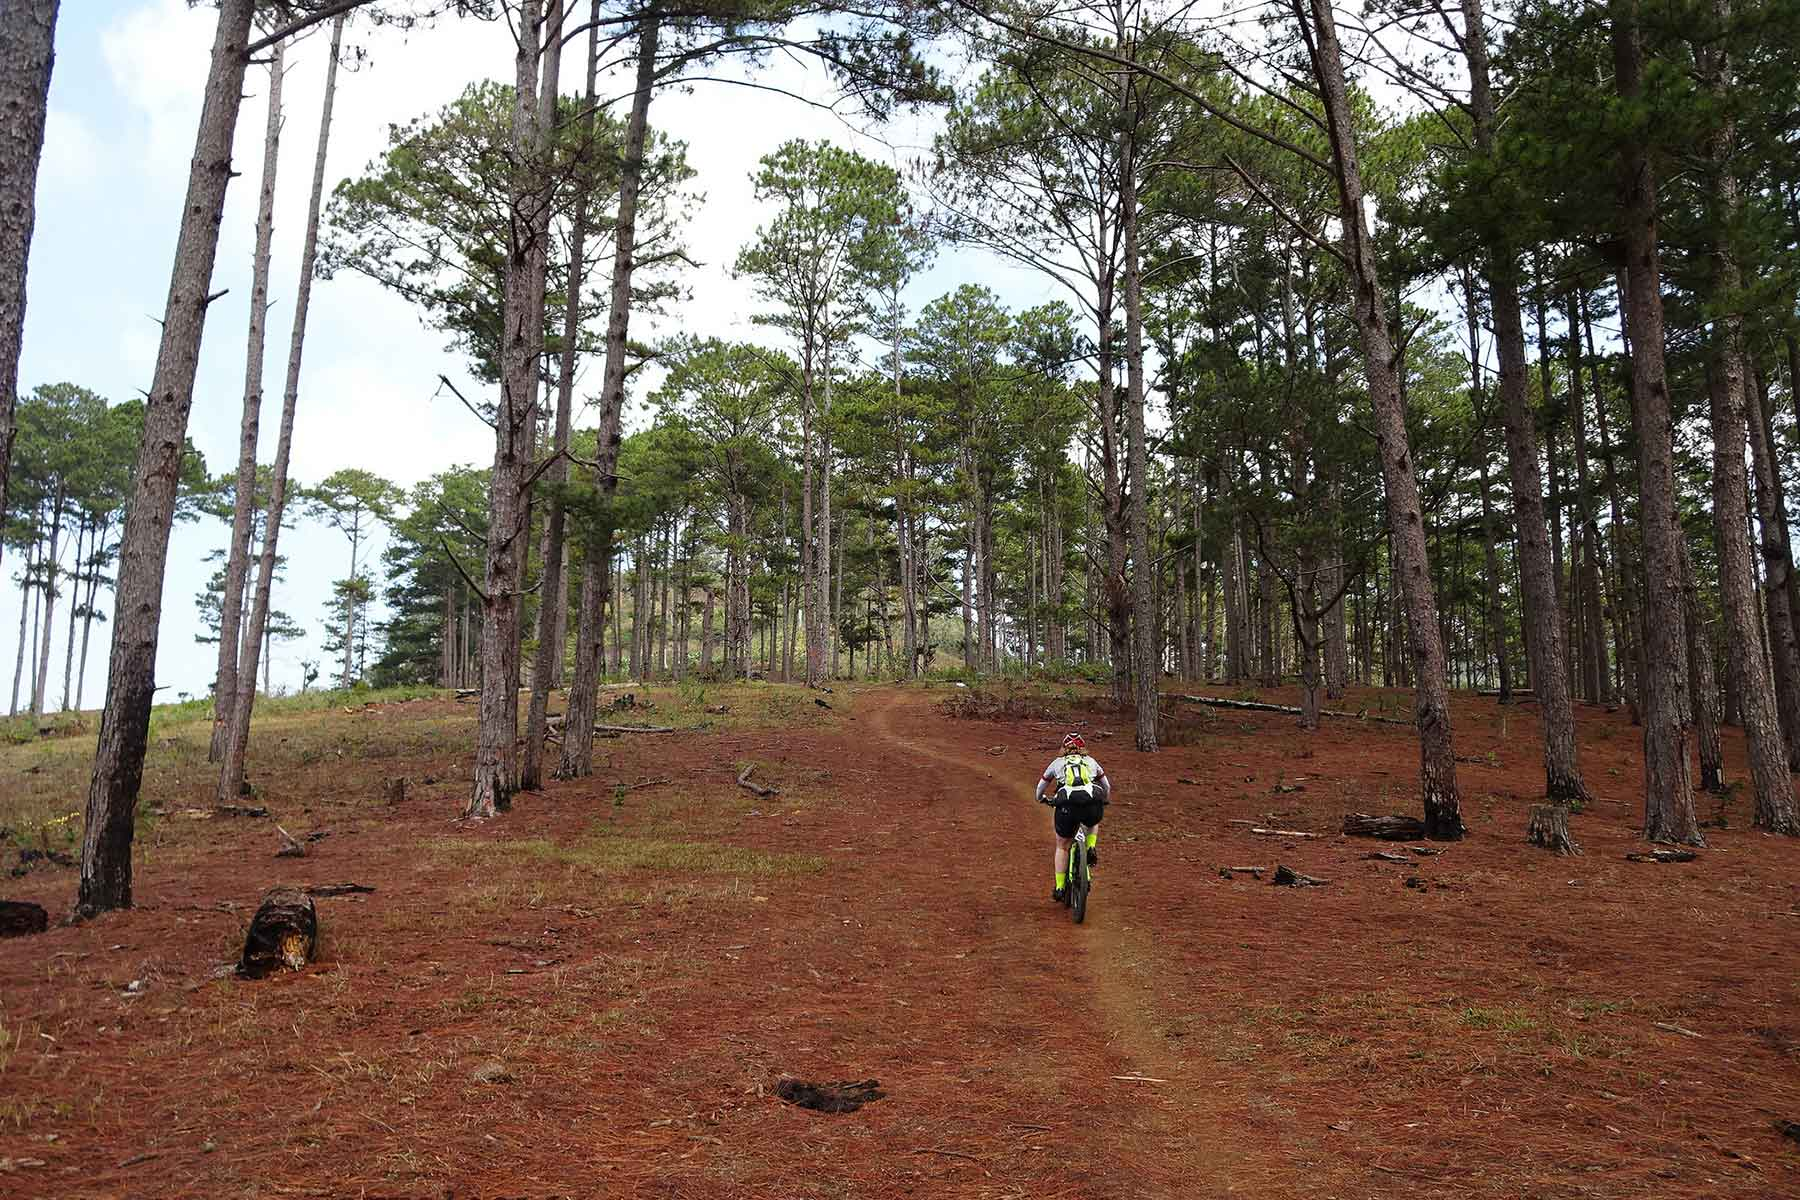 Silk and Elephant road cycling tour from Dalat